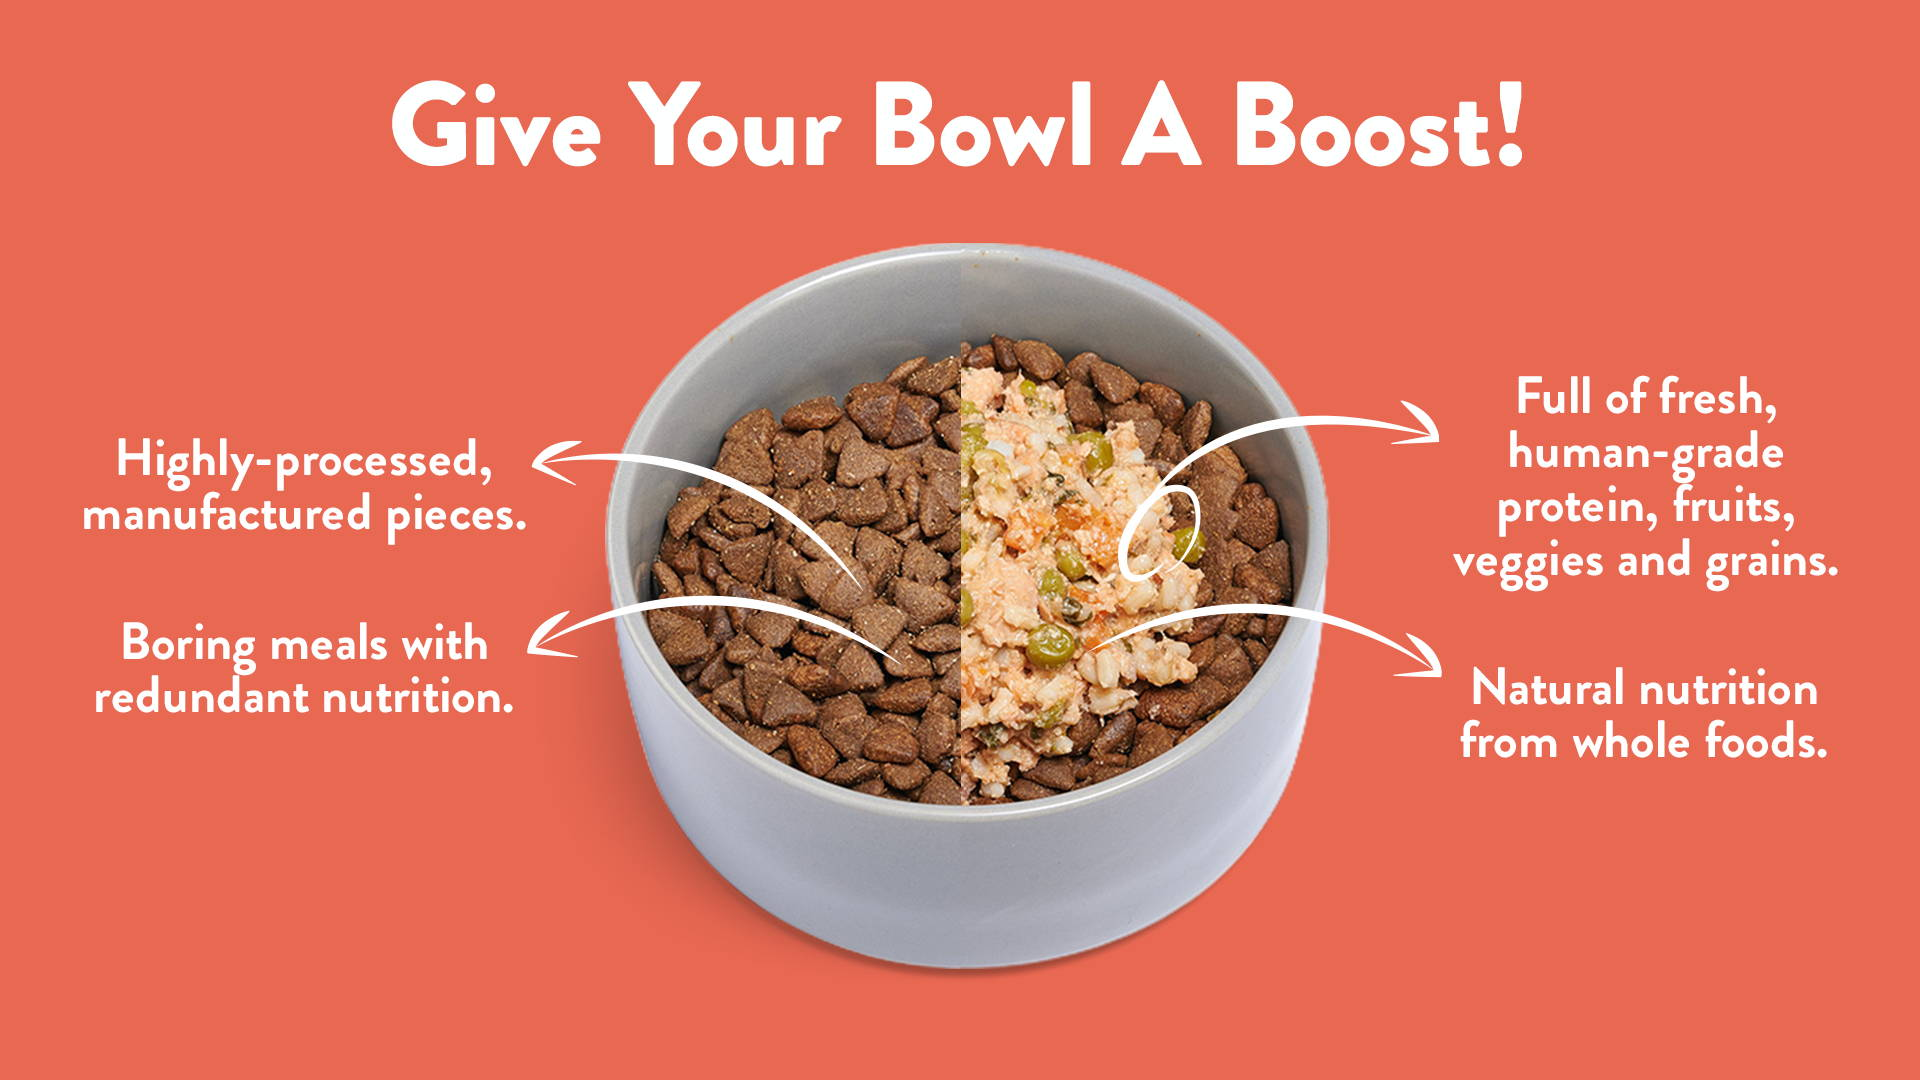 An example of a bowl of kibble topped with Portland Pet Food's fresh, human-grade dog food and its benefits.